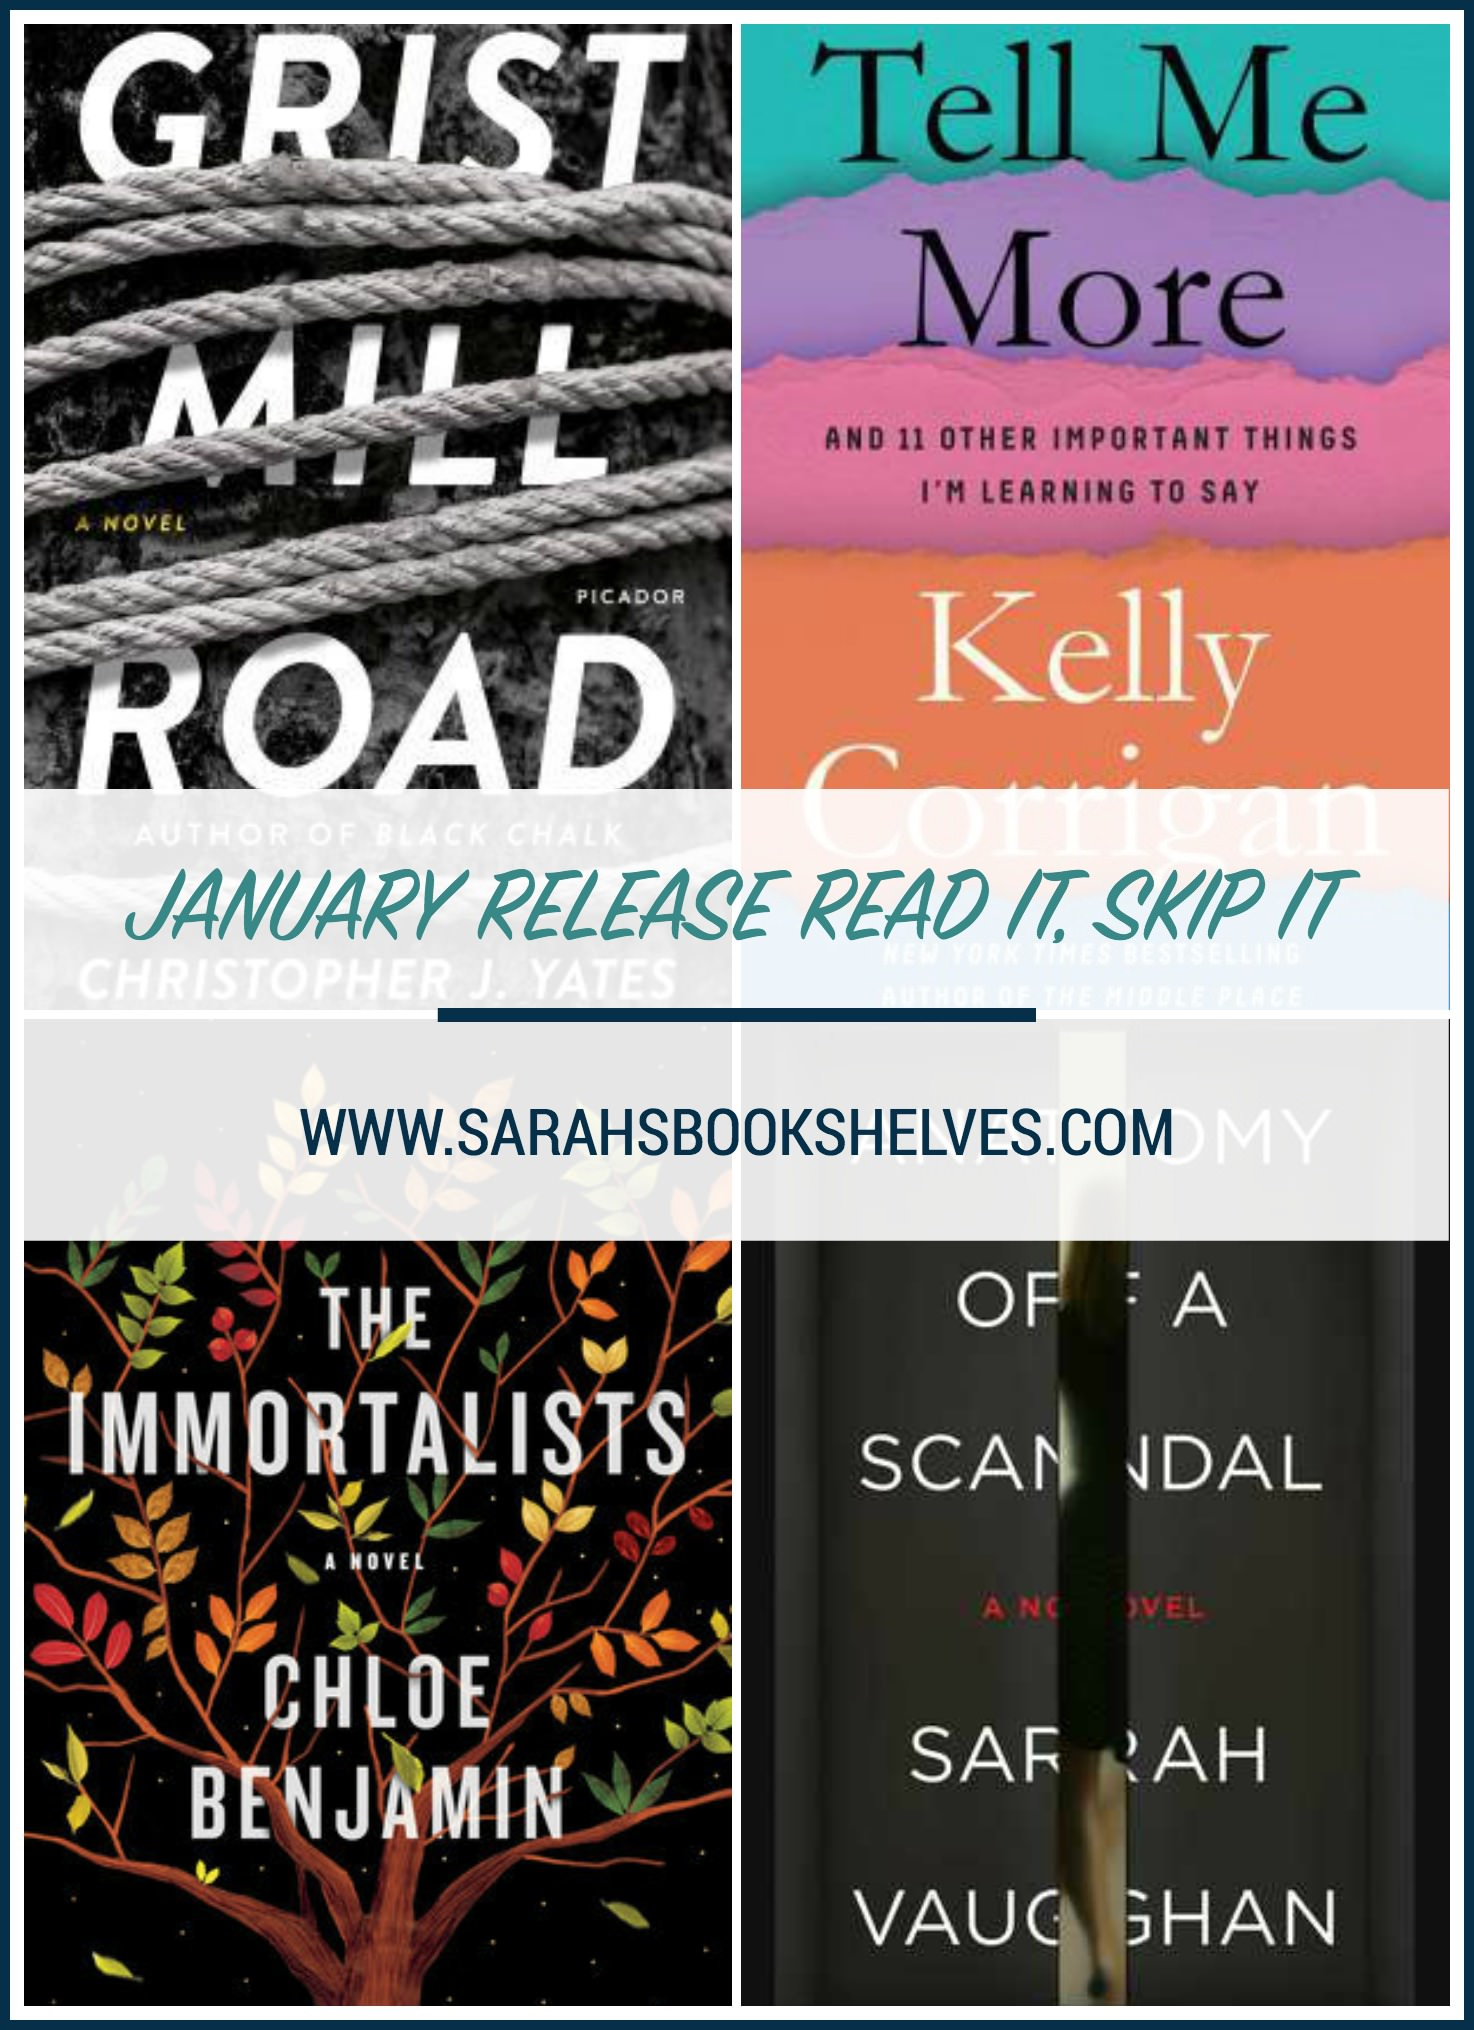 This month, I'm rounding up all my January book reviews (Grist Mill Road, Tell Me More, The Immortalists, Anatomy of a Scandal) into one big Read It, Skip It post. What could give you a clearer picture of the January releases than that?! #reading #bookreviews #book #bookish #bookworms #booklovers #booklist